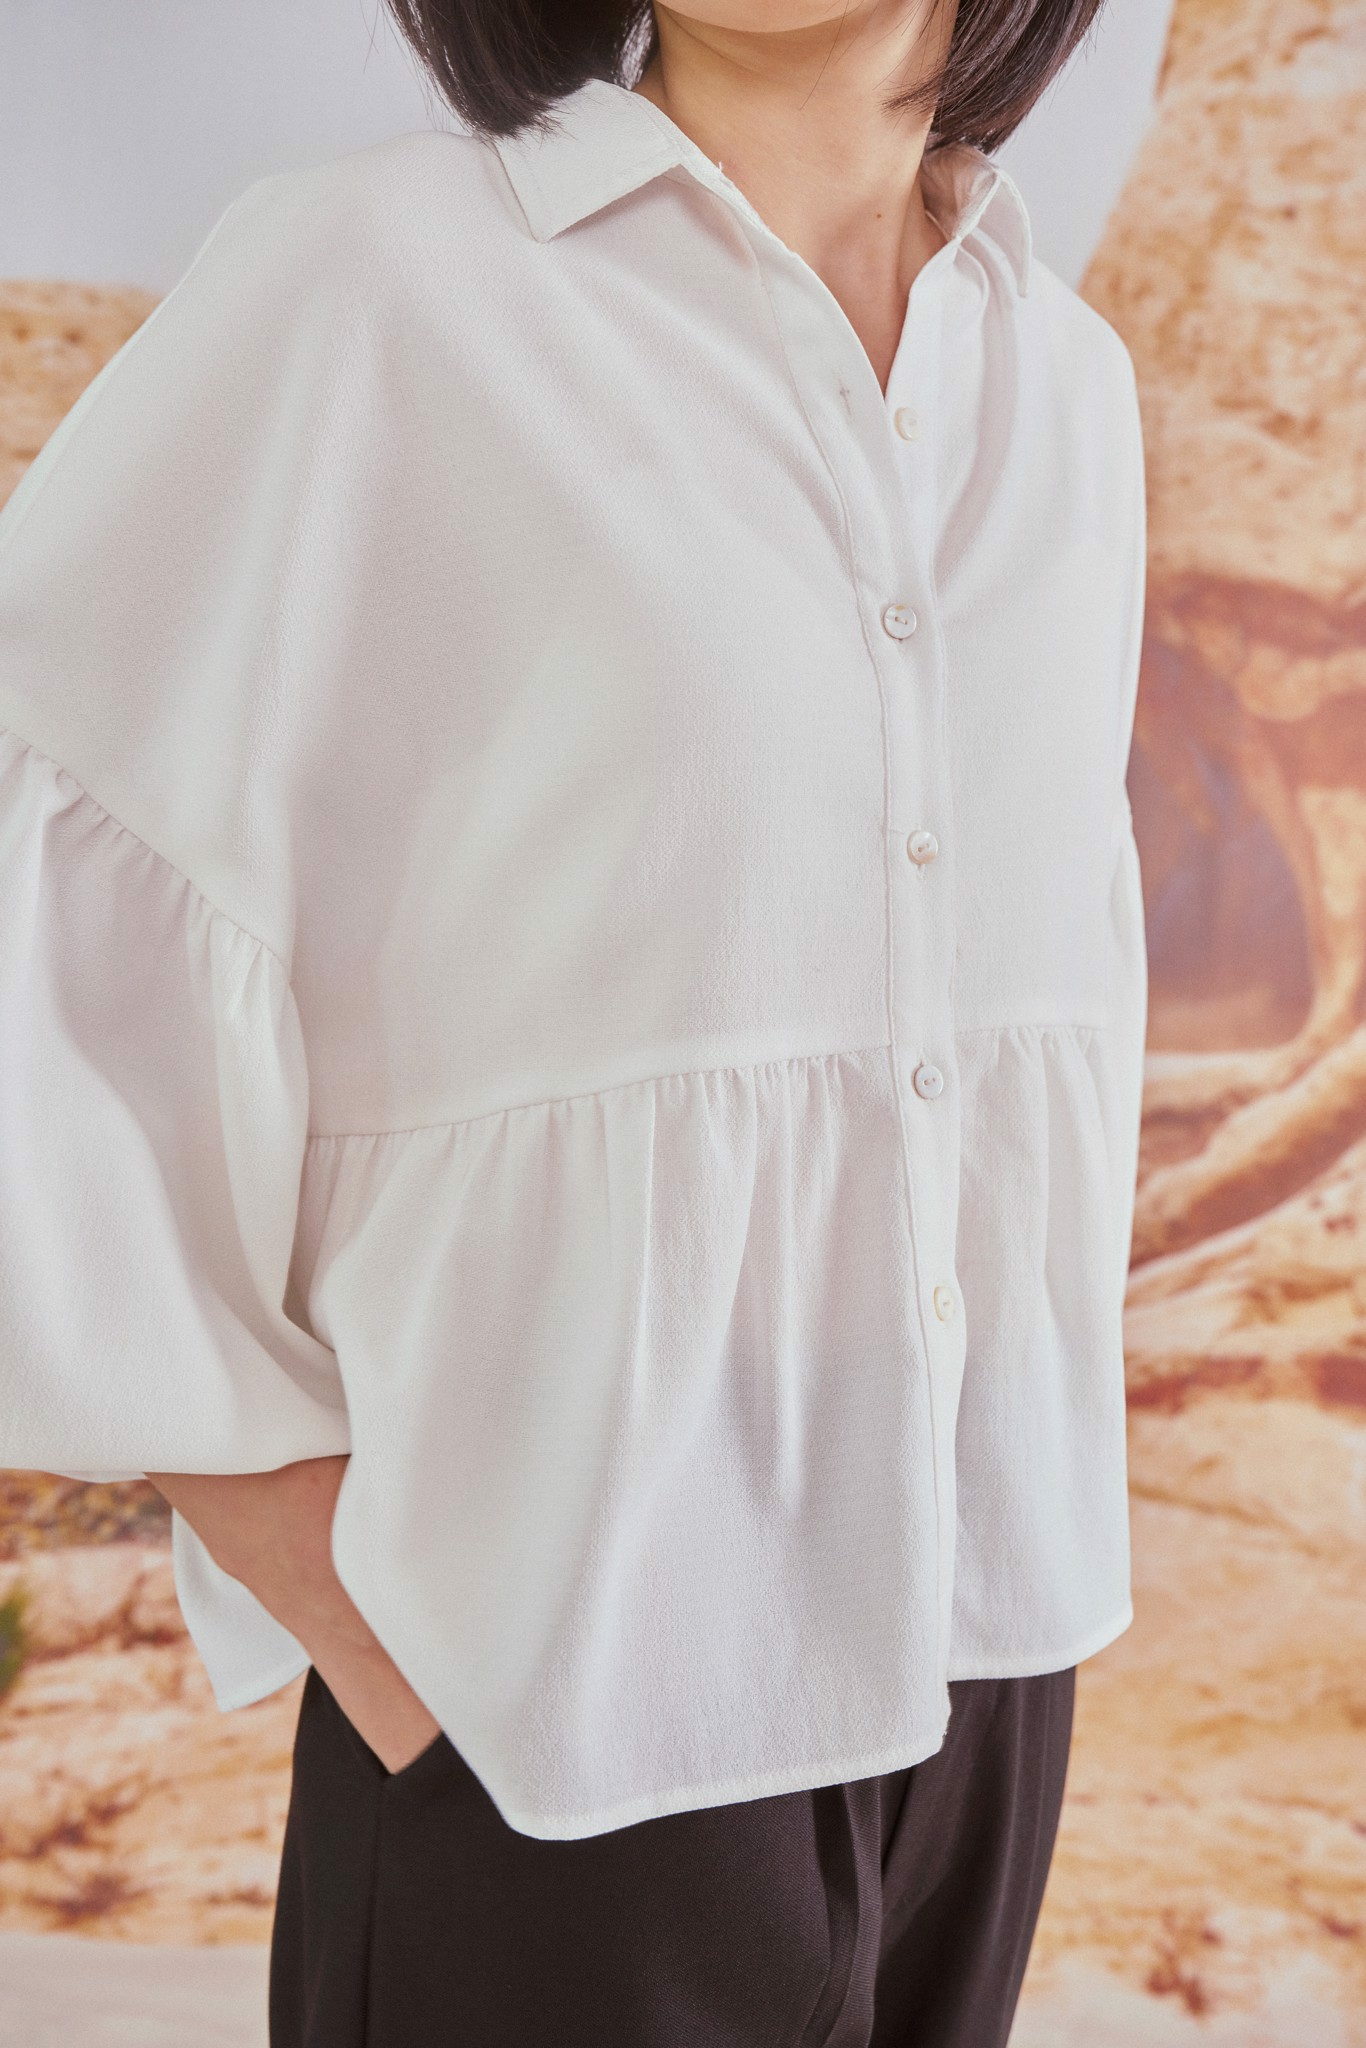 White Frilled Blouse